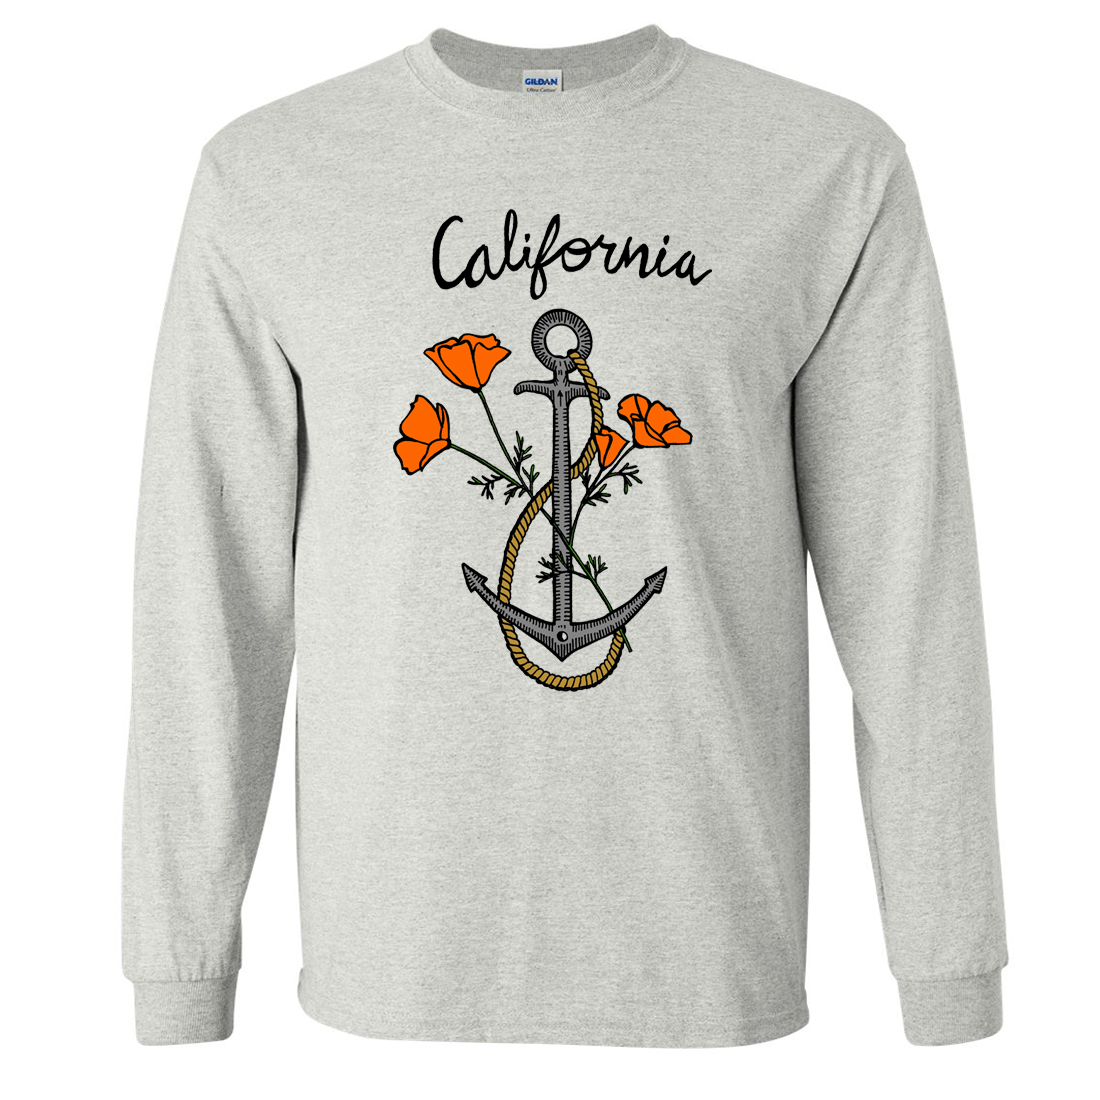 California Anchor Poppies Long Sleeve Shirt